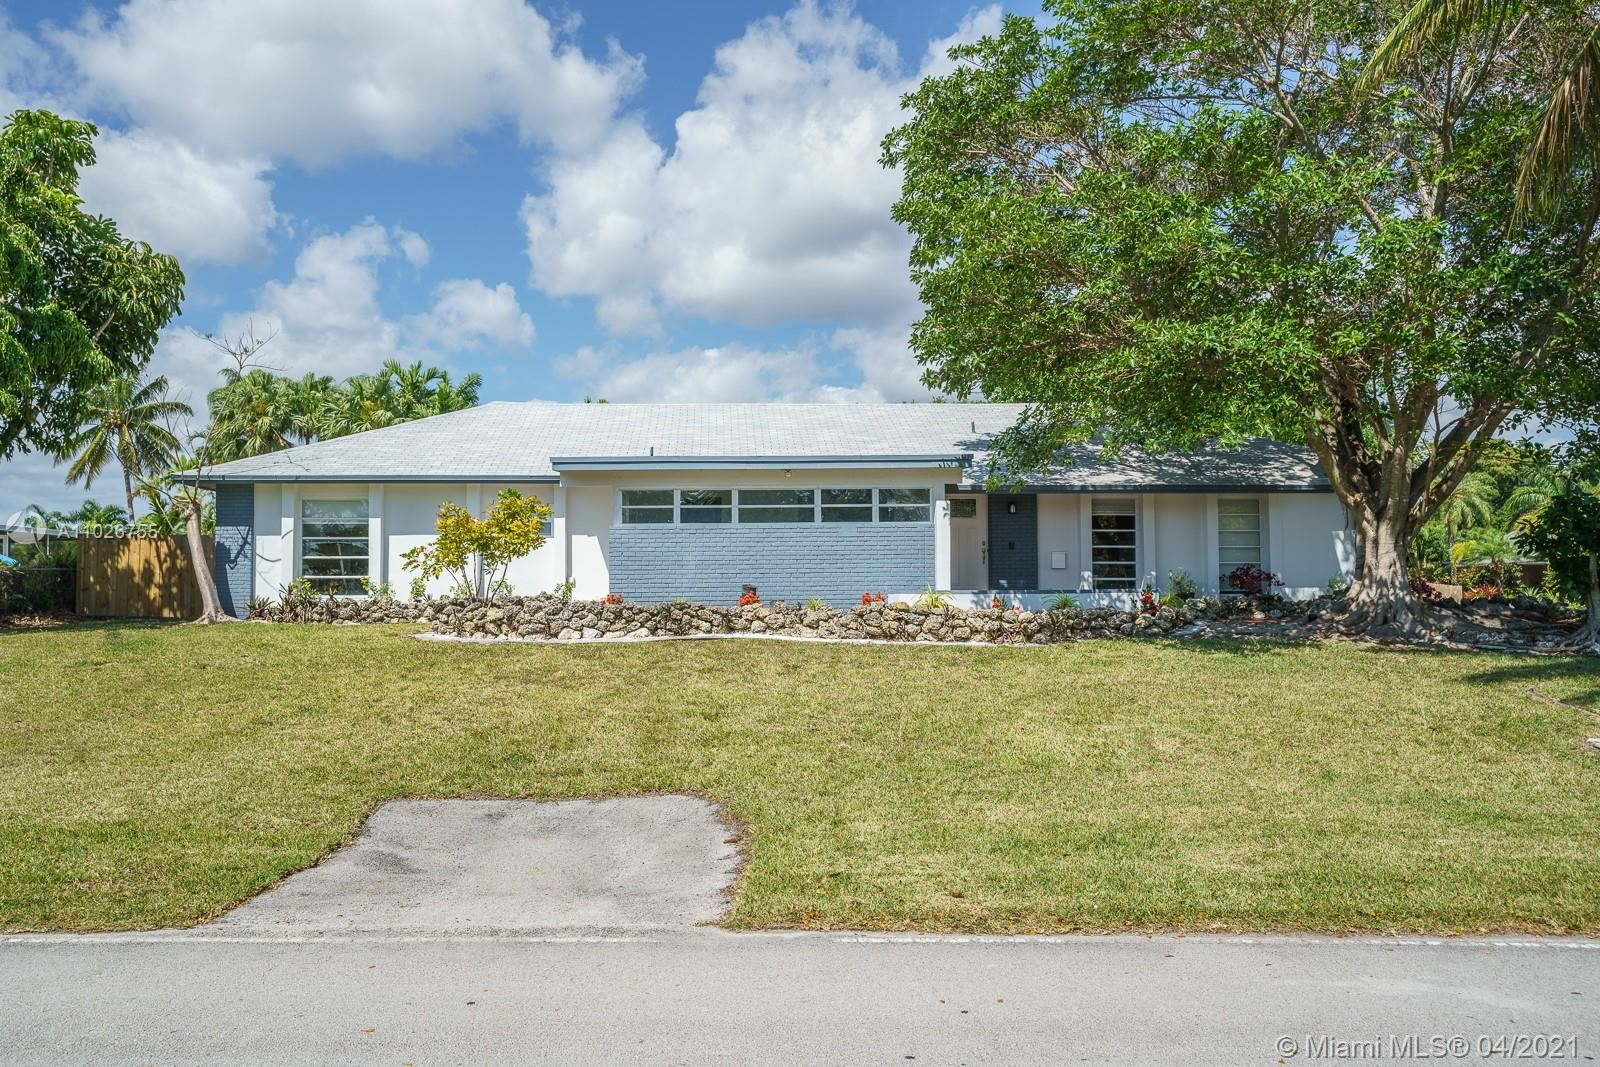 18452 SW 88th Pl, Cutler Bay, FL 33157 - #: A11026755